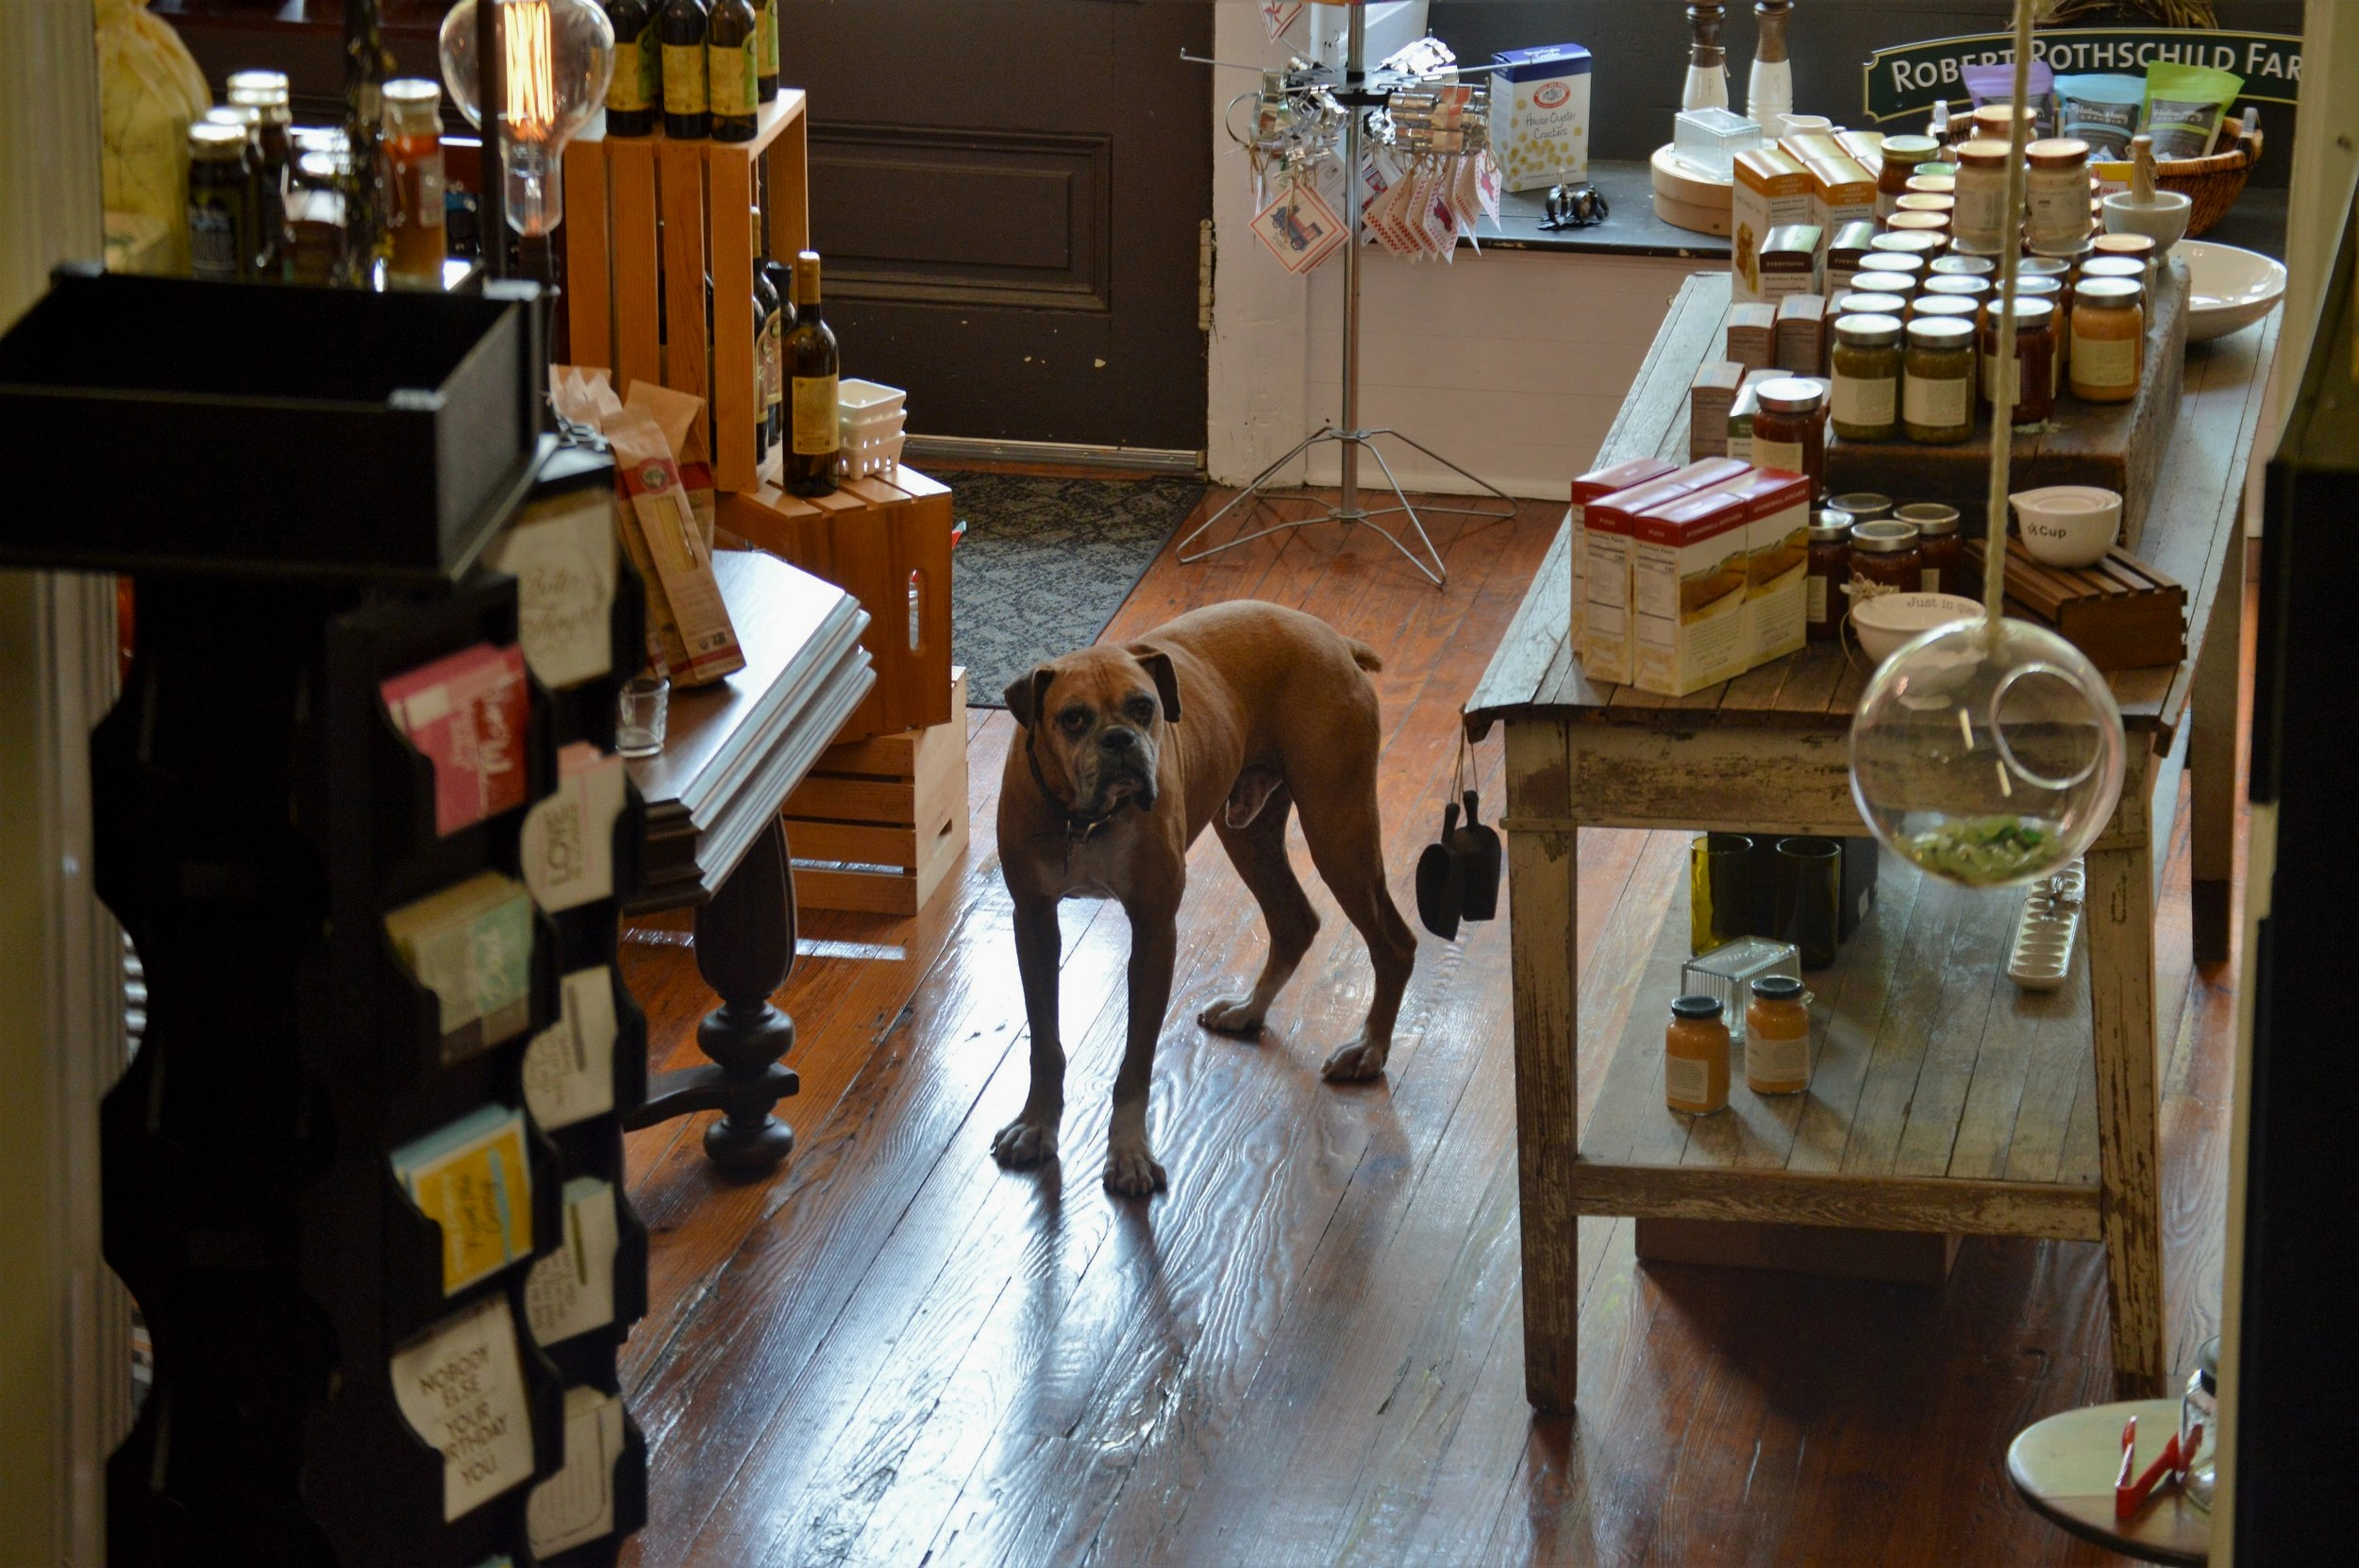 A dog named Pendleton is a regular fixture at Urban 2 Country a store featuring gourmet kitchen items, a candy counter featuring decadent sweet treats and many more items.